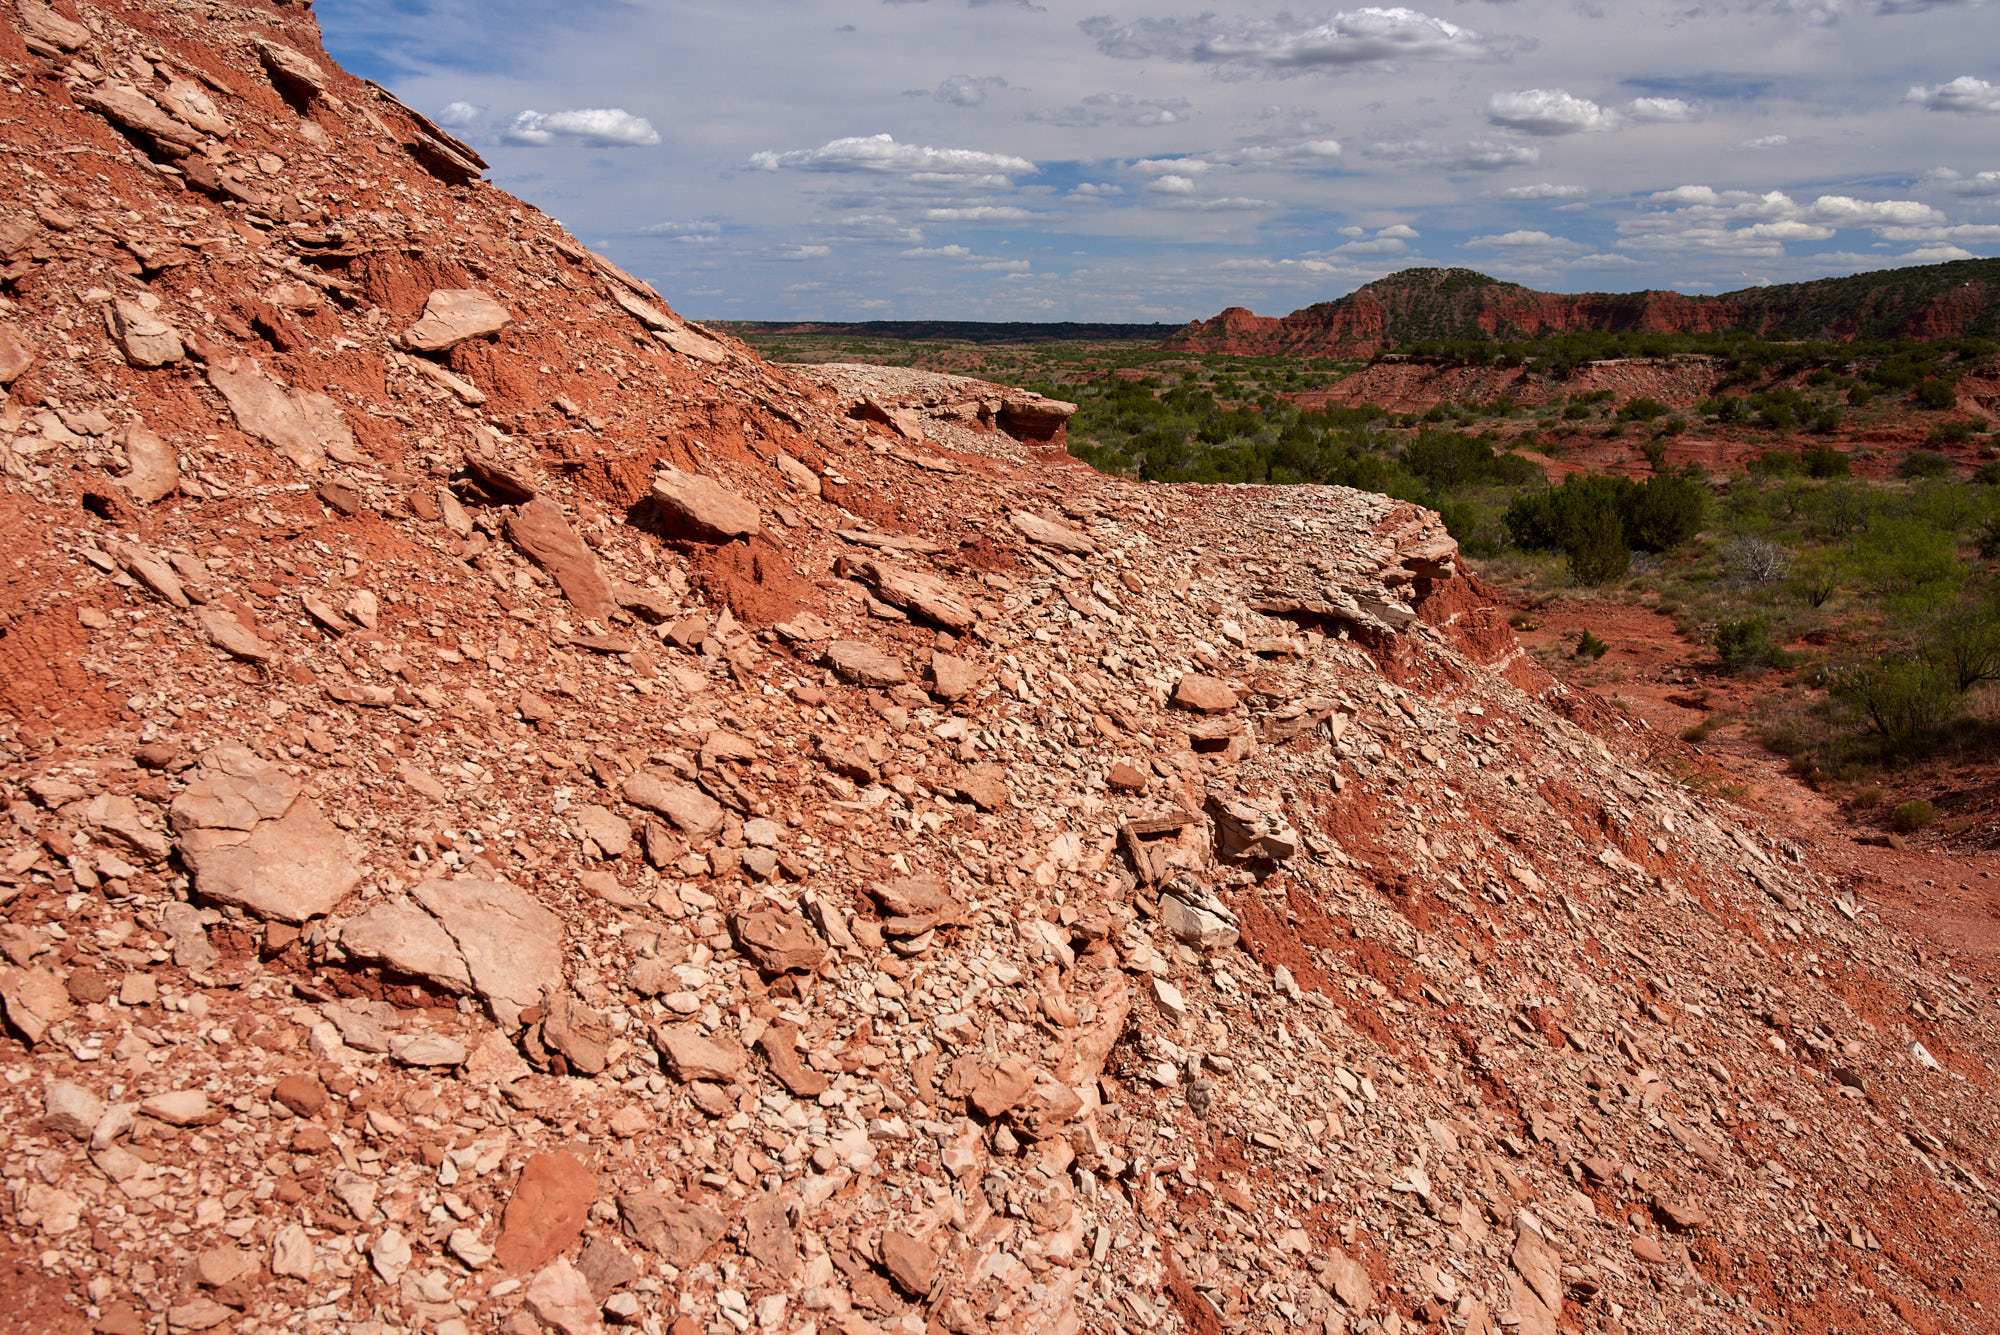 Caprock Canyon - Summer Day - Details of Red Sandstone